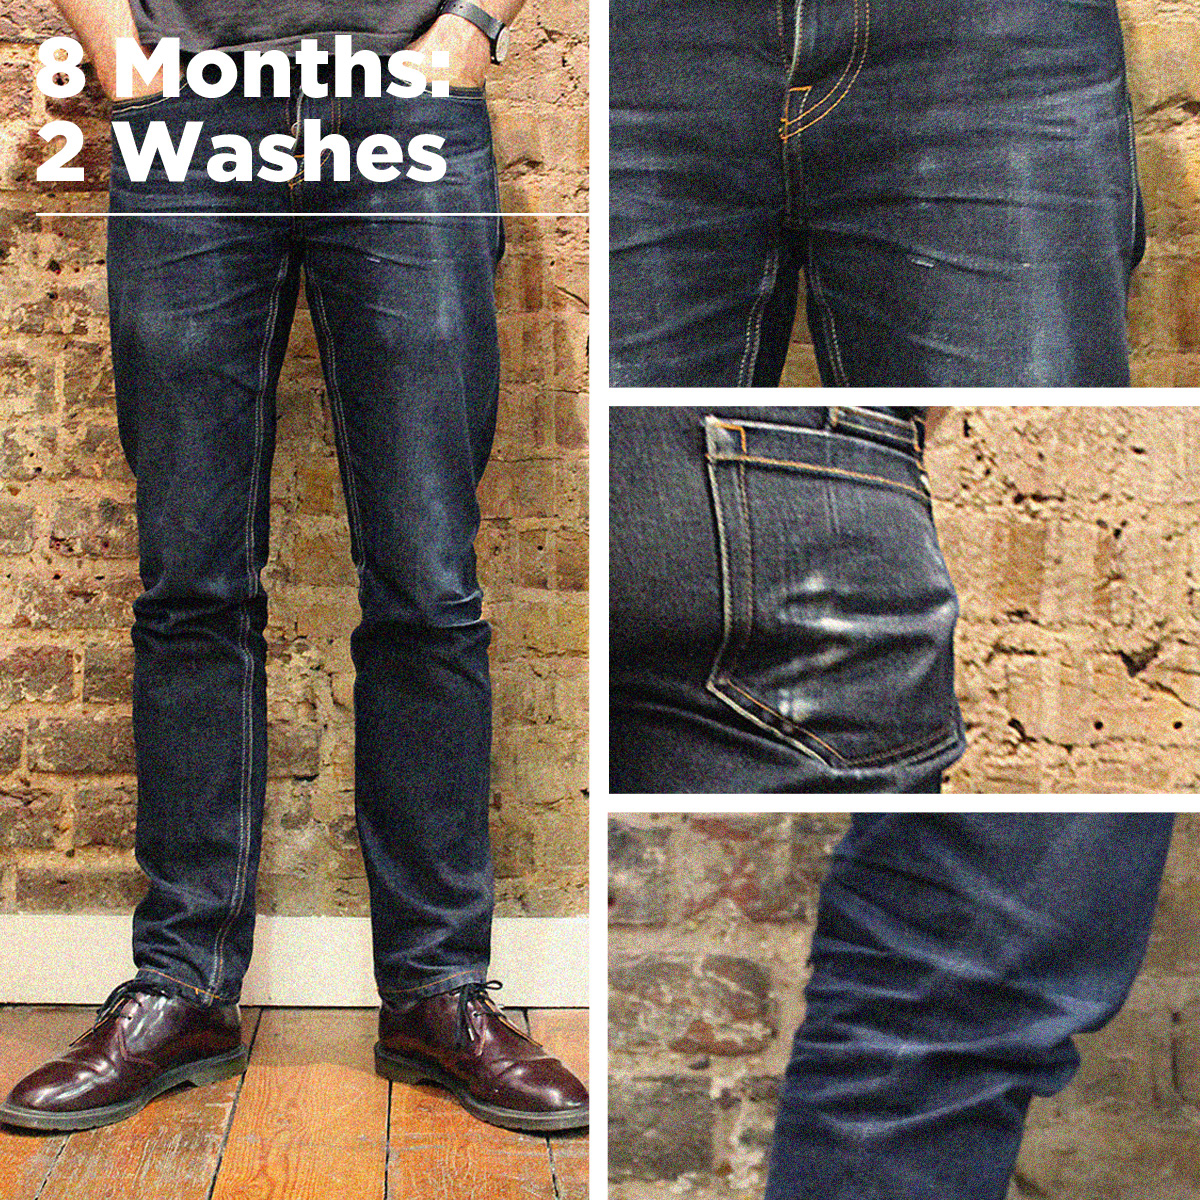 How to wash jeans in a washing machine